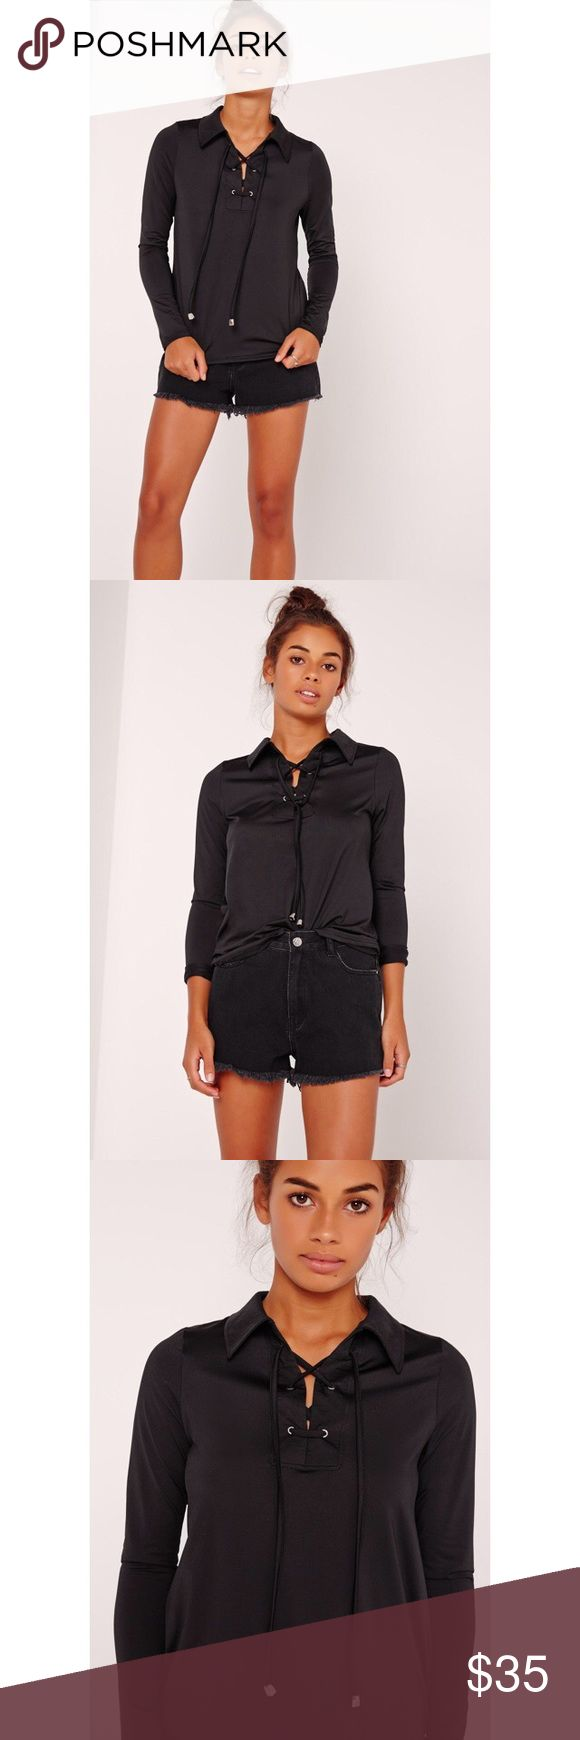 """collar detail sporty lace up top black for casual stylin' or night time ballin', you need this lace up top. in all black with lace up detail to the front, wear with jeans and ankle boots for effortless style.   approx length 56cm/22"""" Missguided Tops Tees - Long Sleeve"""